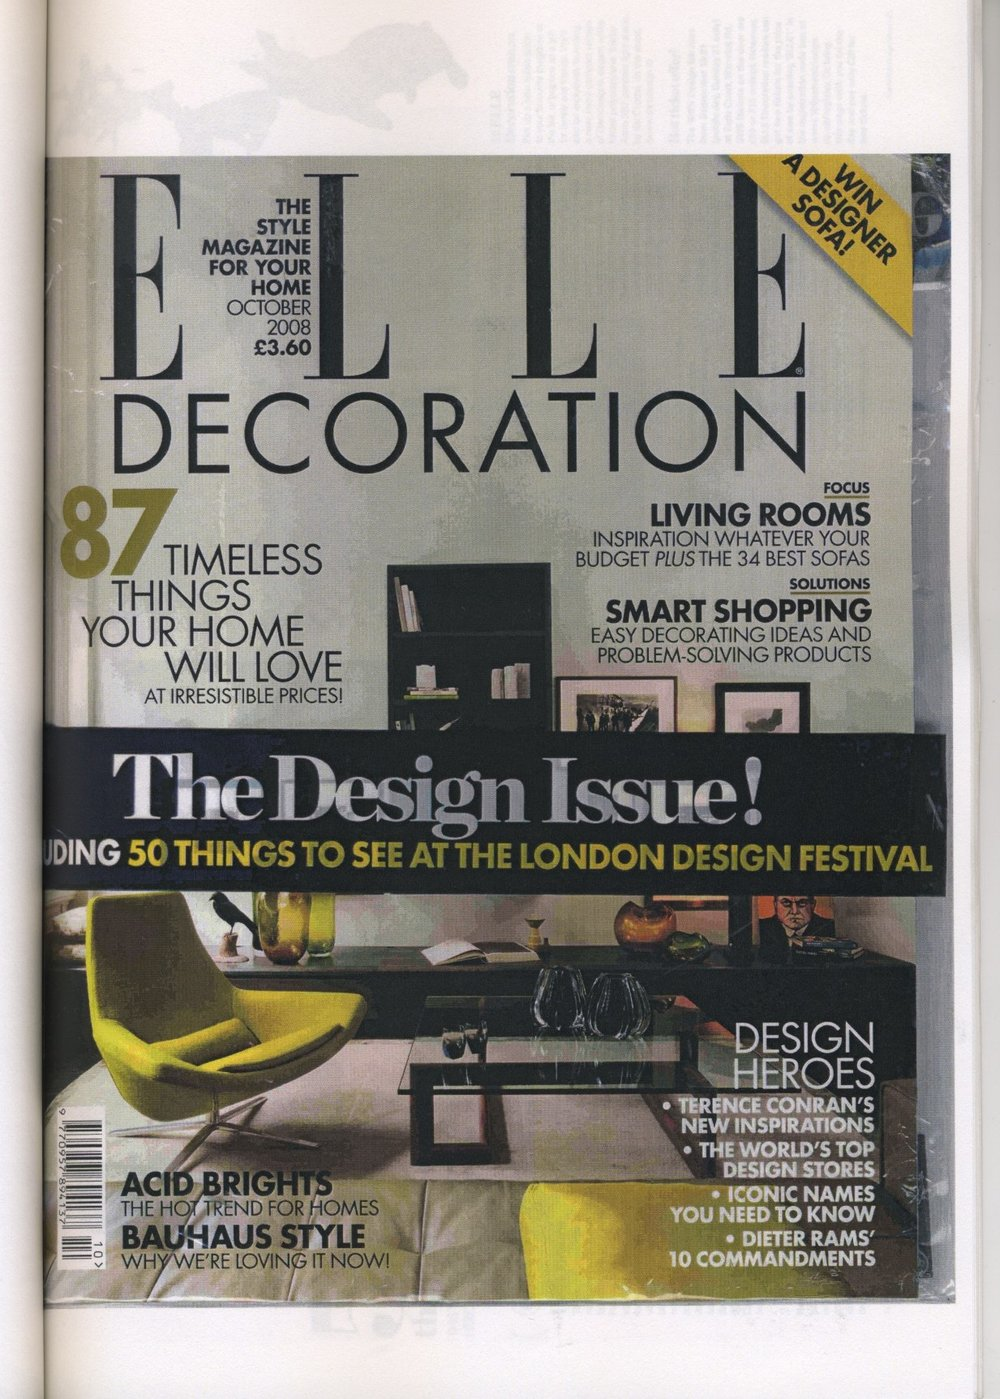 Elle Decoration Oct 2008: London Design Festival